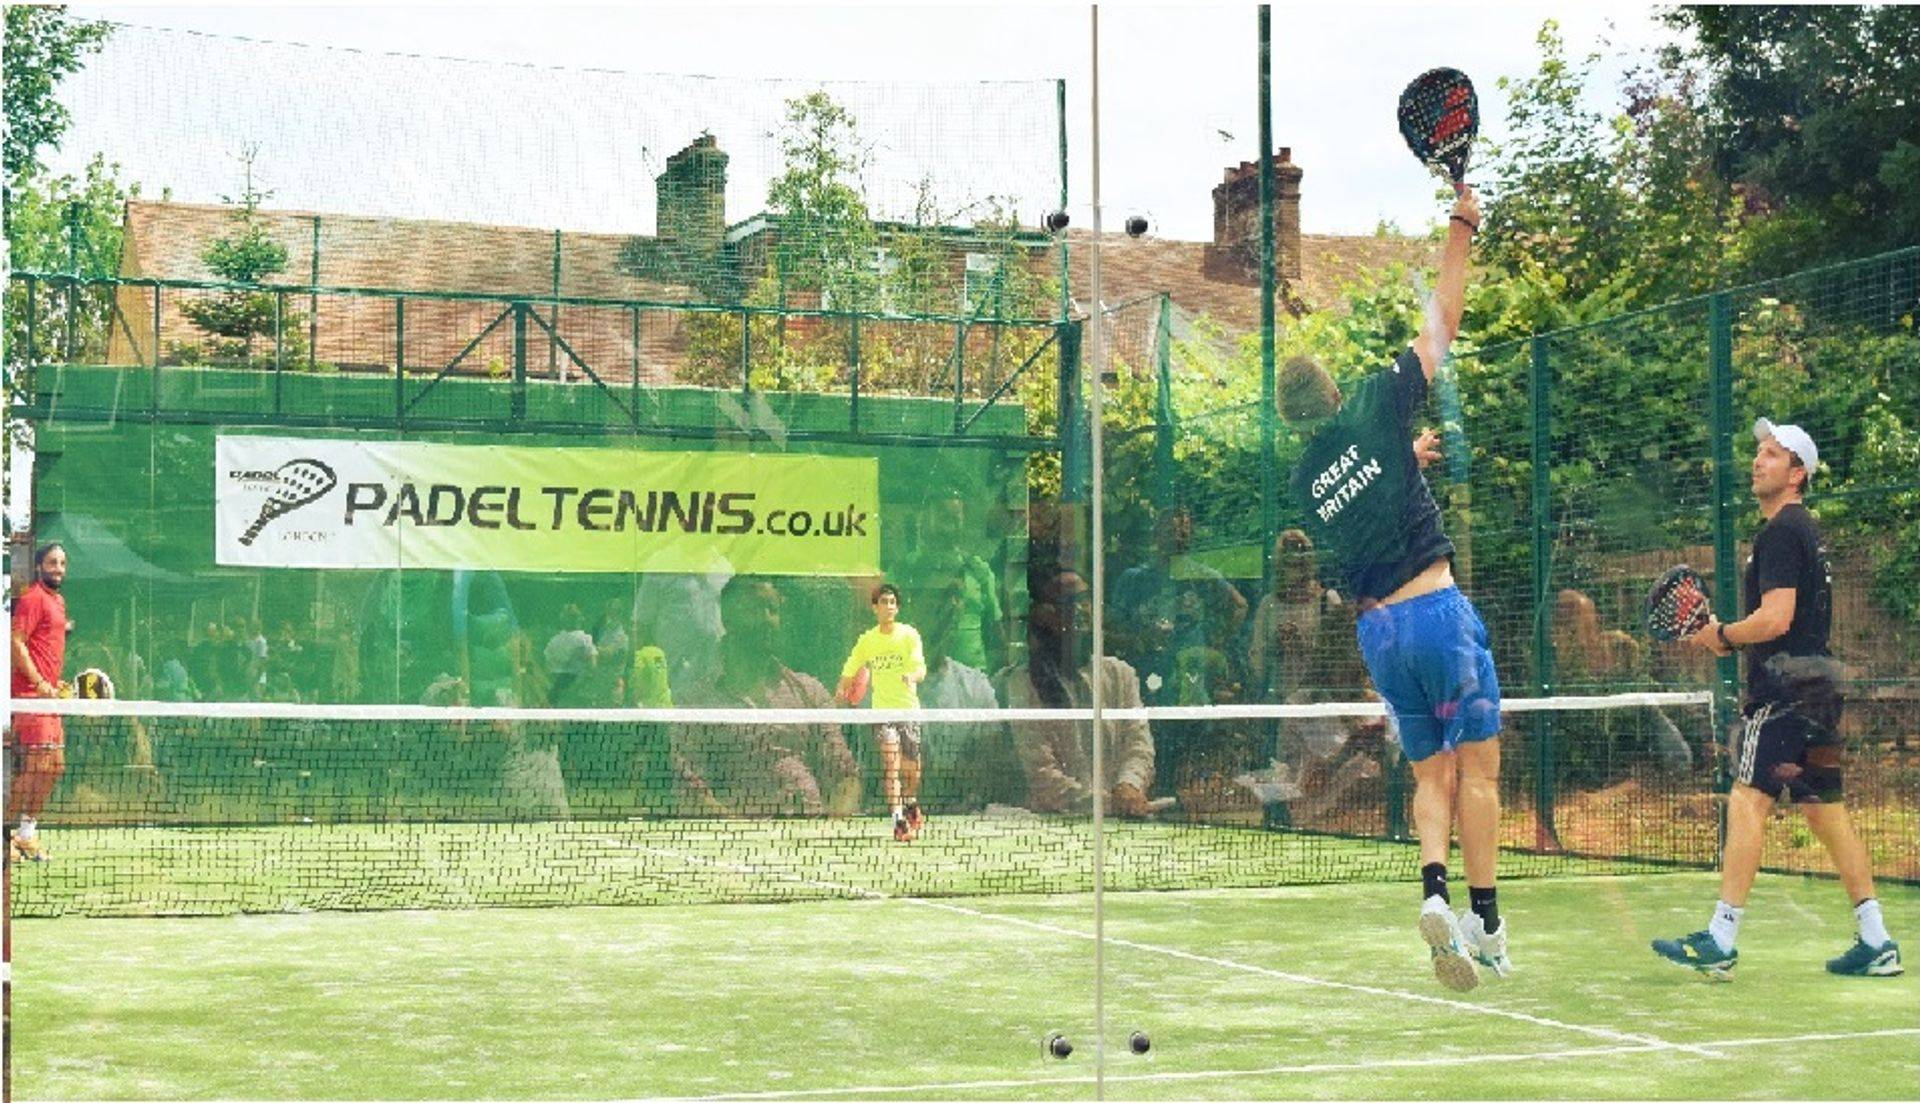 padel tennis club in london